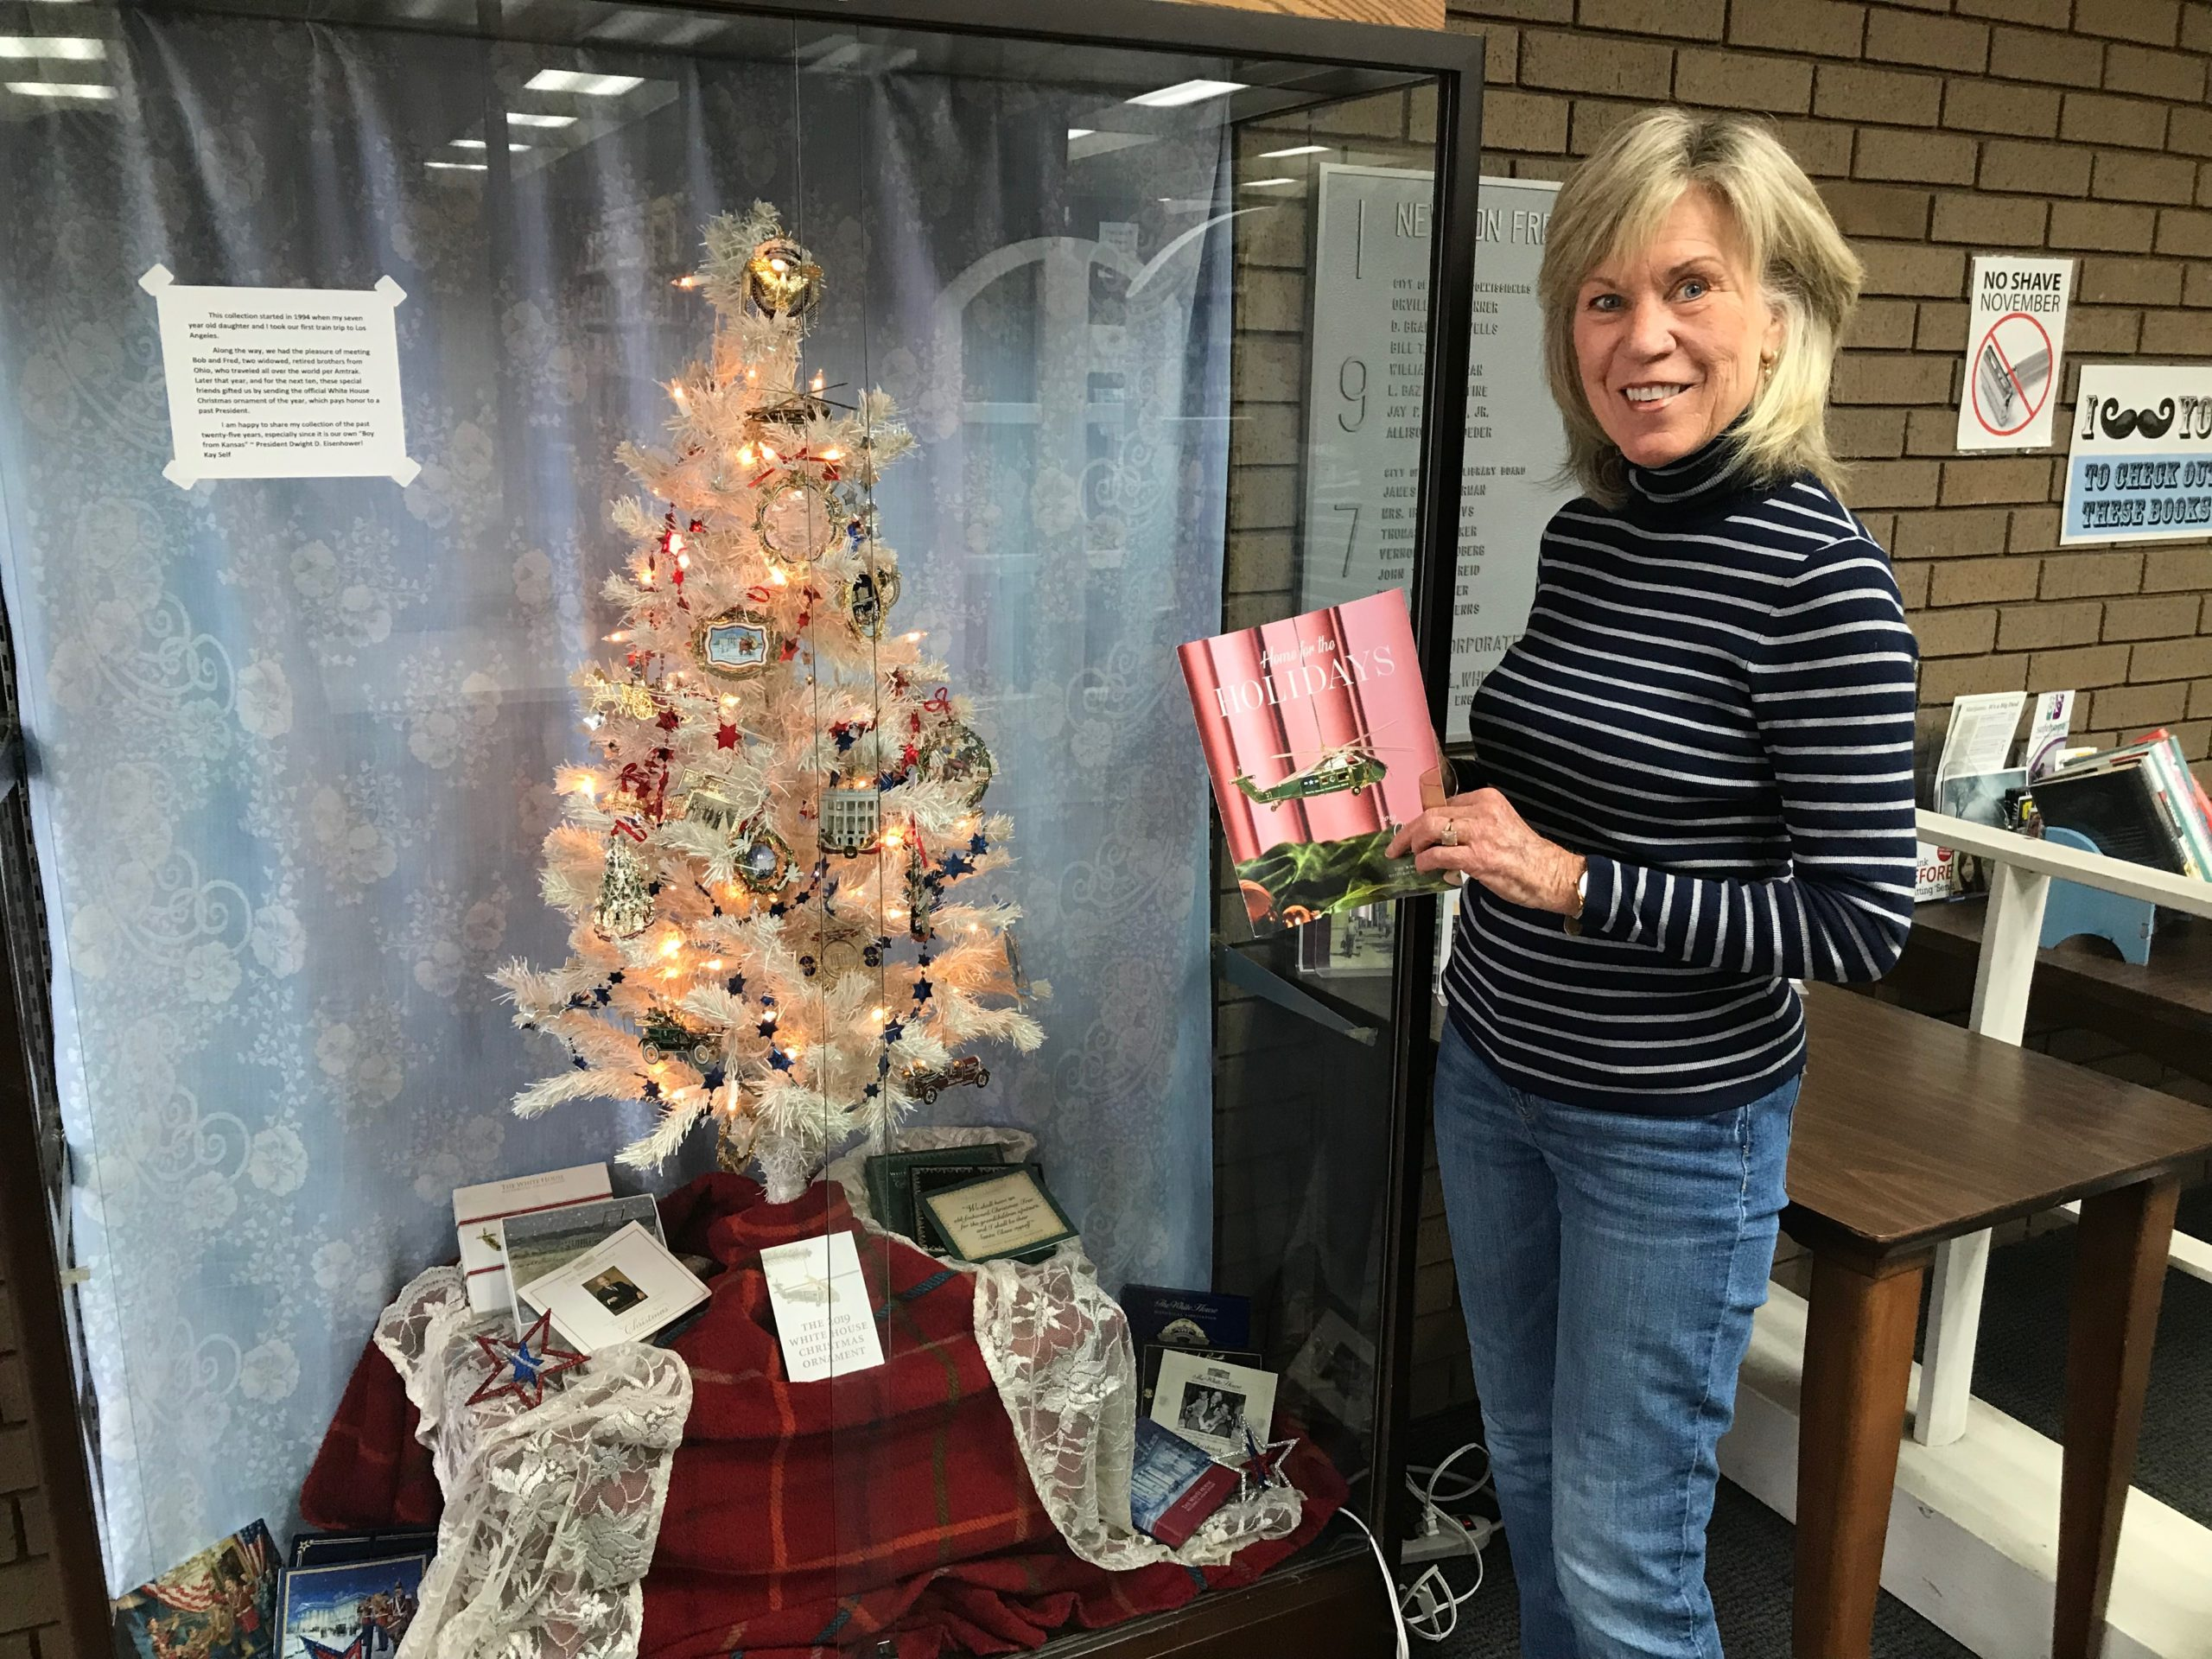 Kay Self poses for a photo with her Christmas ornament display. White House commemorative Christmas ornaments on a white artificial tree.